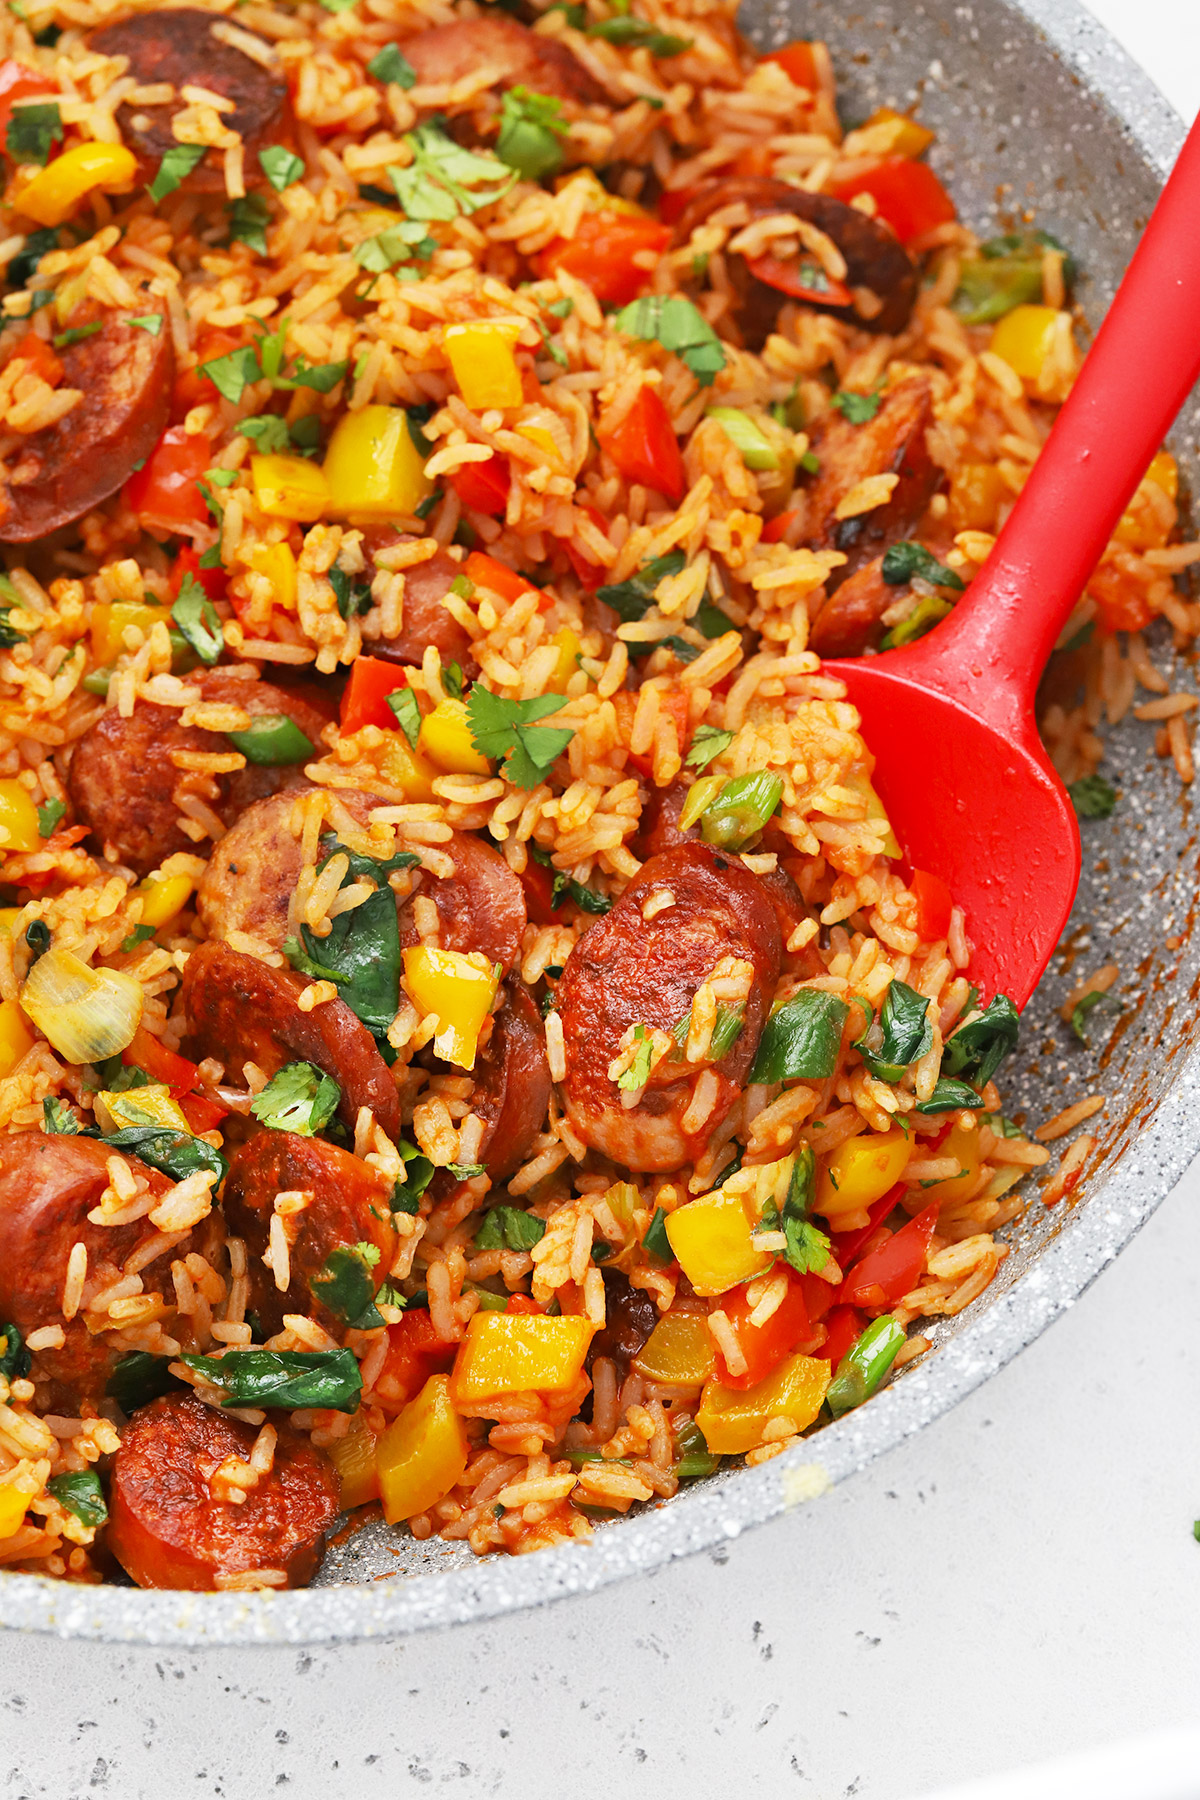 Close-up overhead view of Cajun Sausage and Rice Skillet with a red spatula on a white background